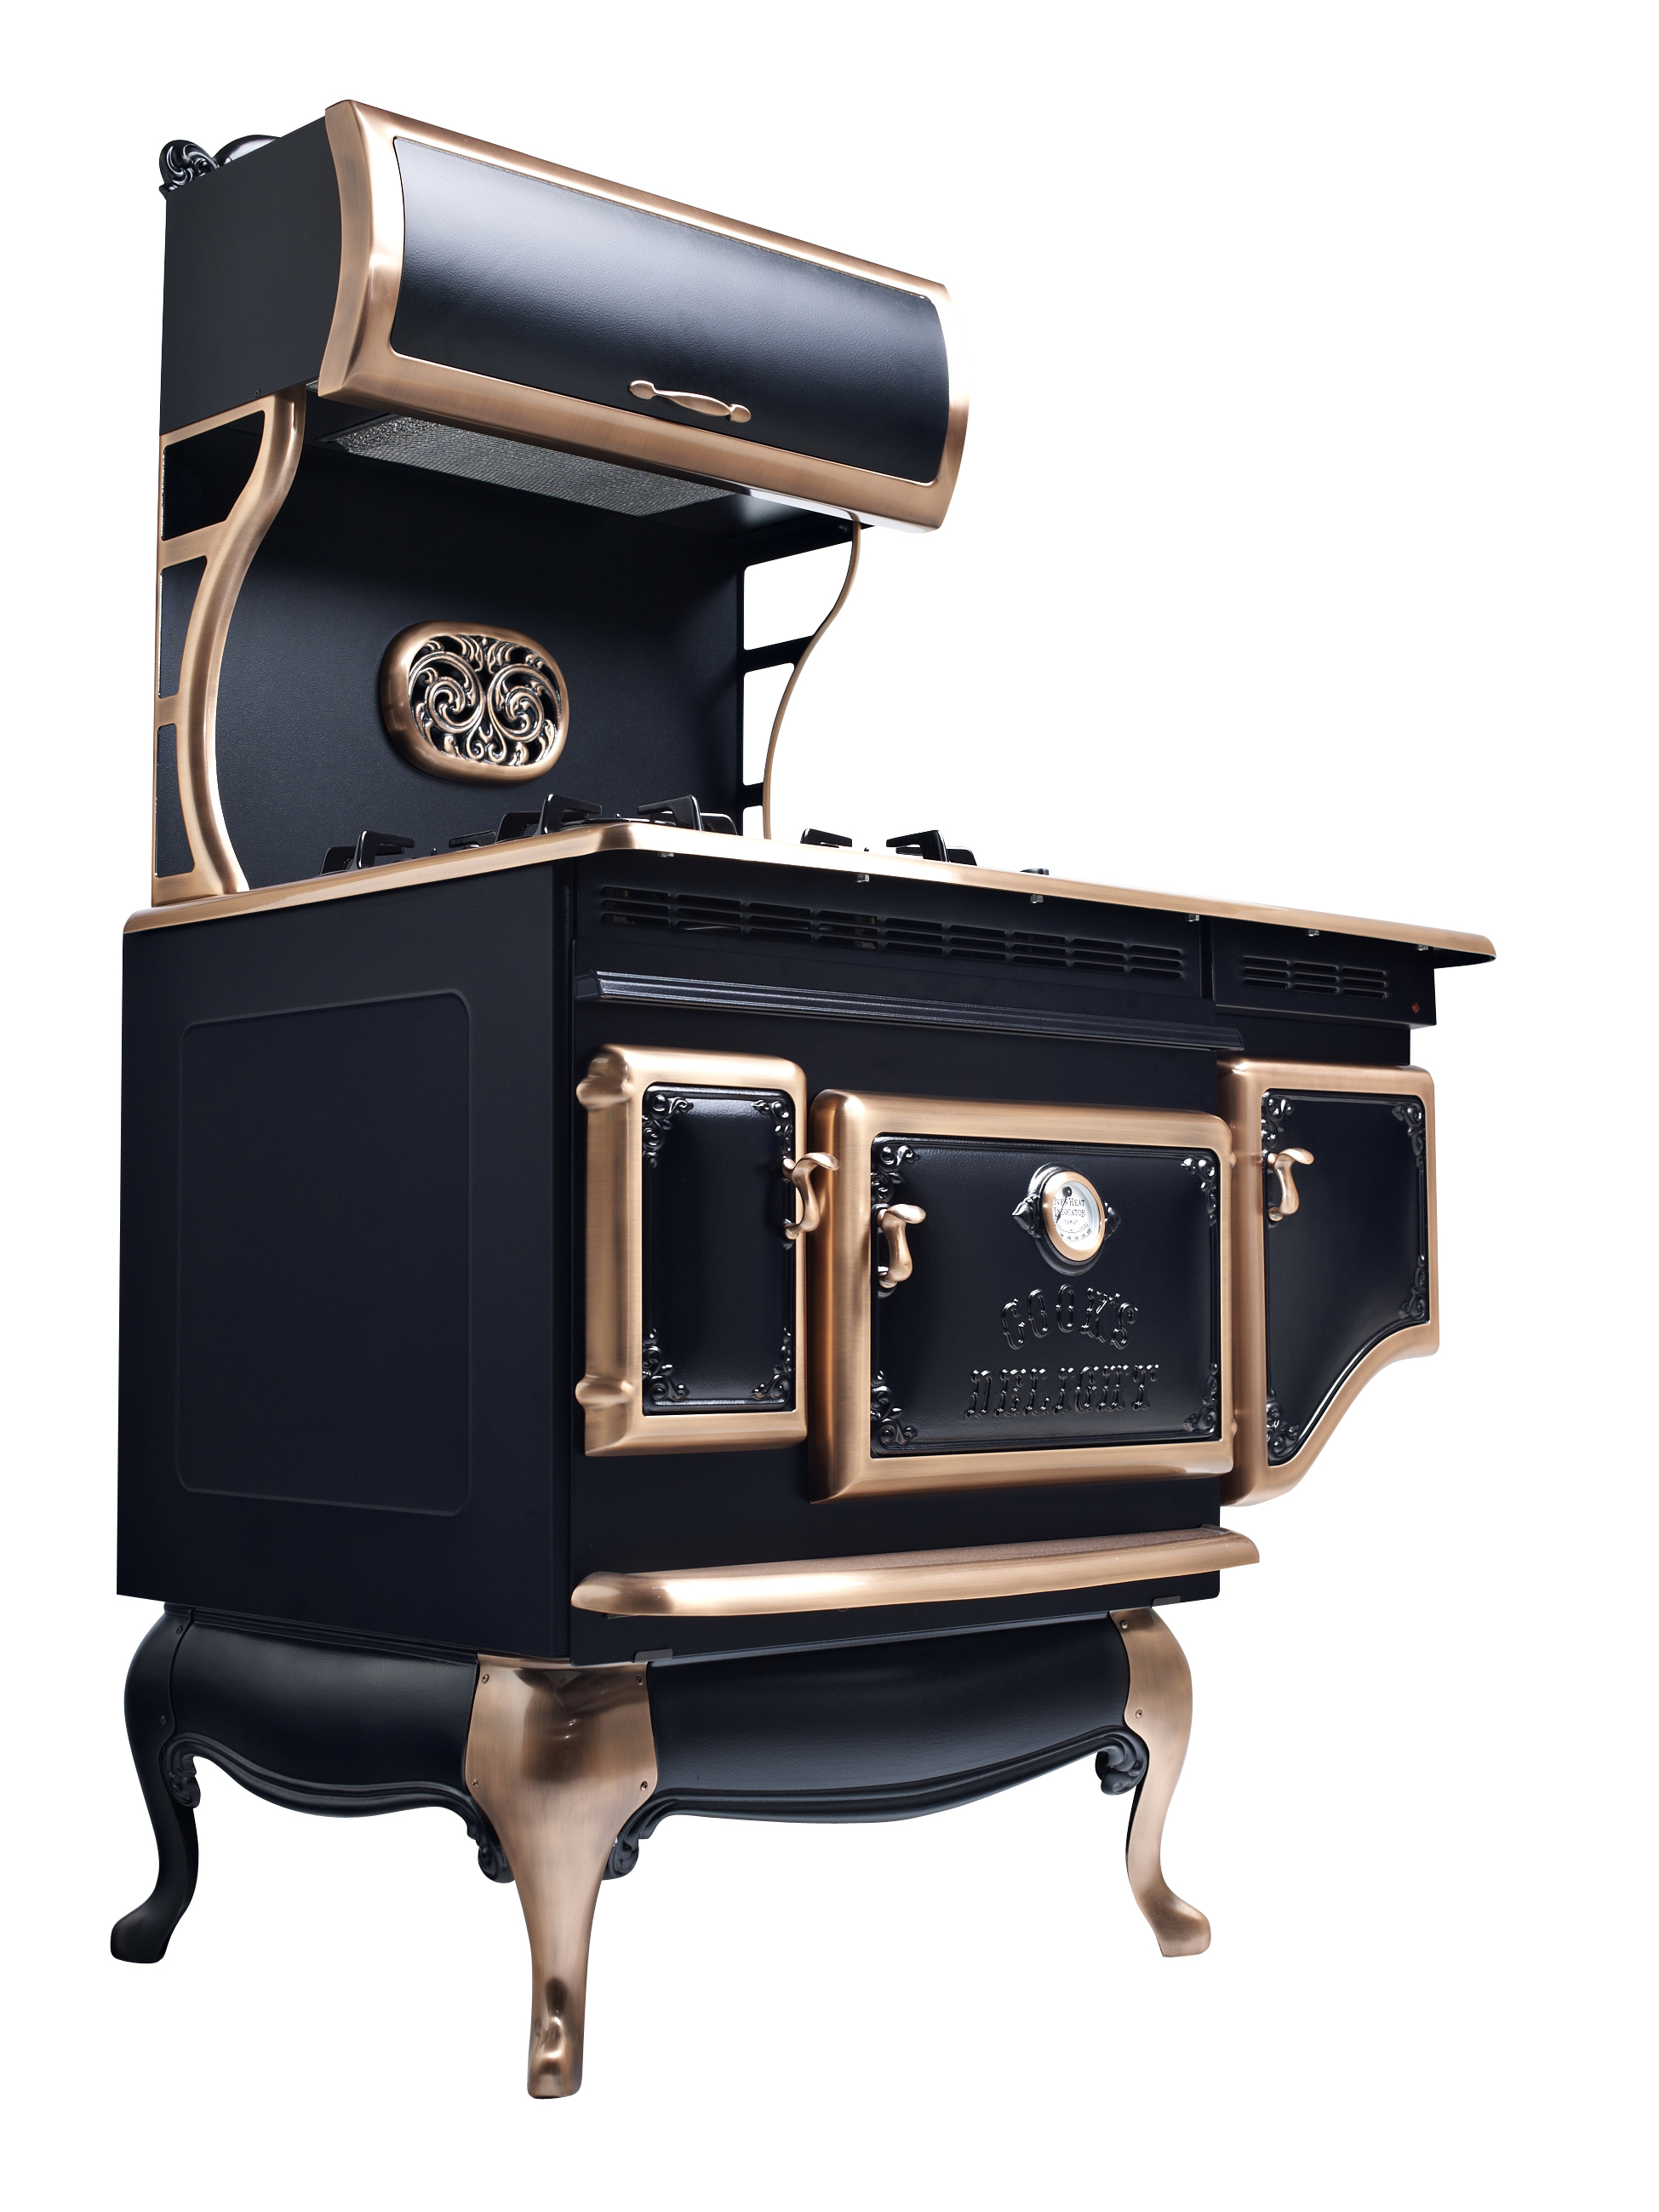 Wood cook stoves & So Much More! - The Original Flame